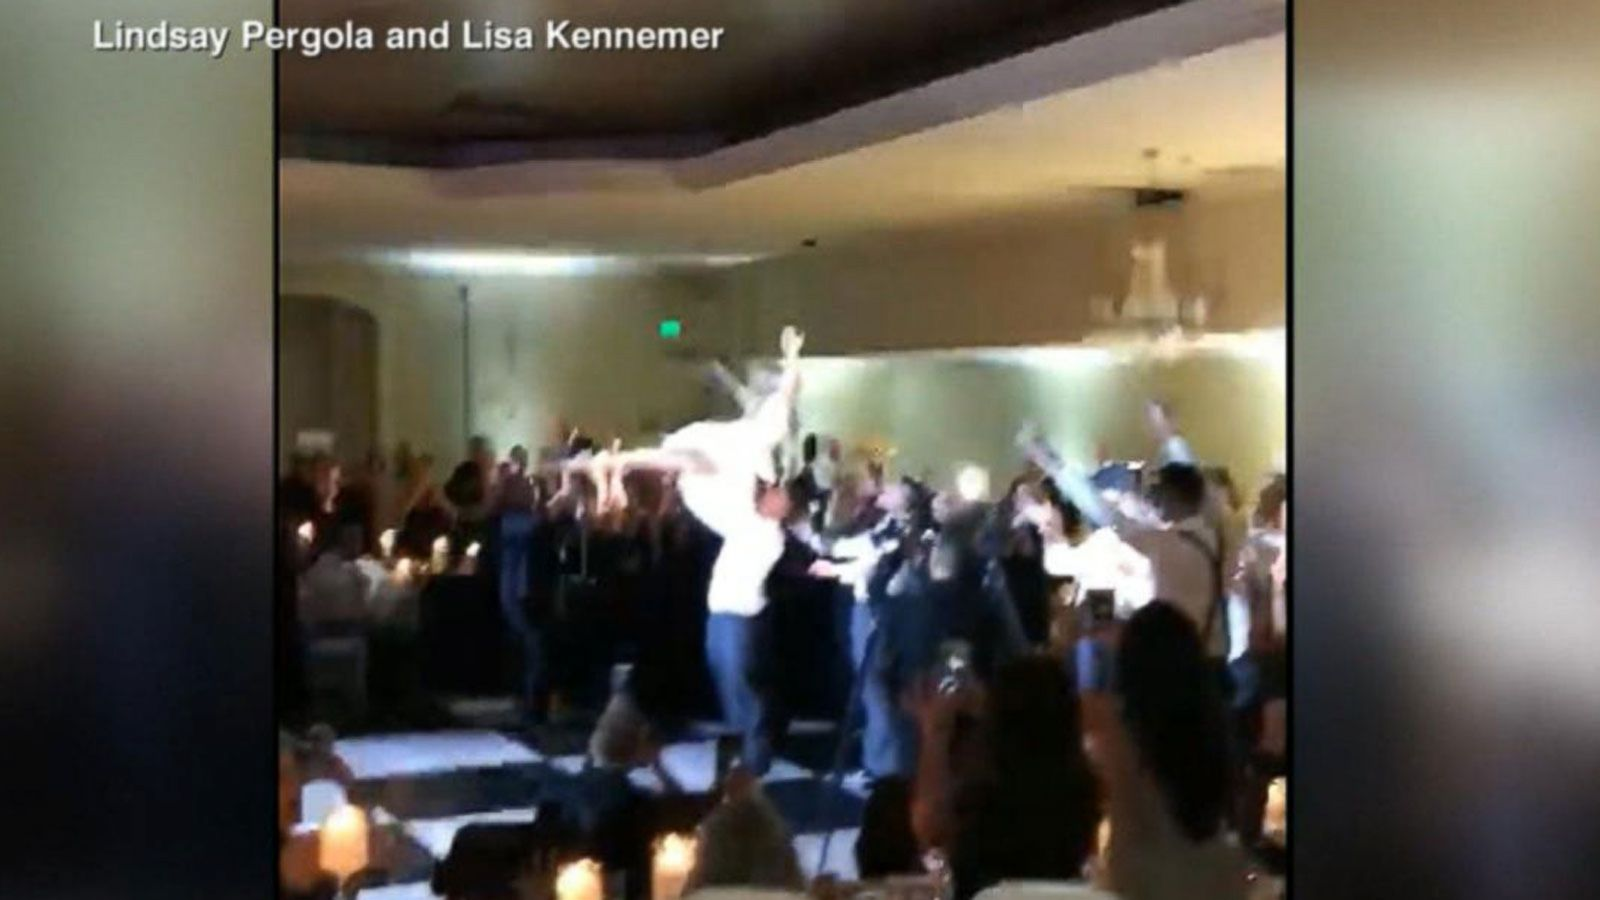 VIDEO: Couple Nails Iconic Dirty Dancing Routine at Wedding